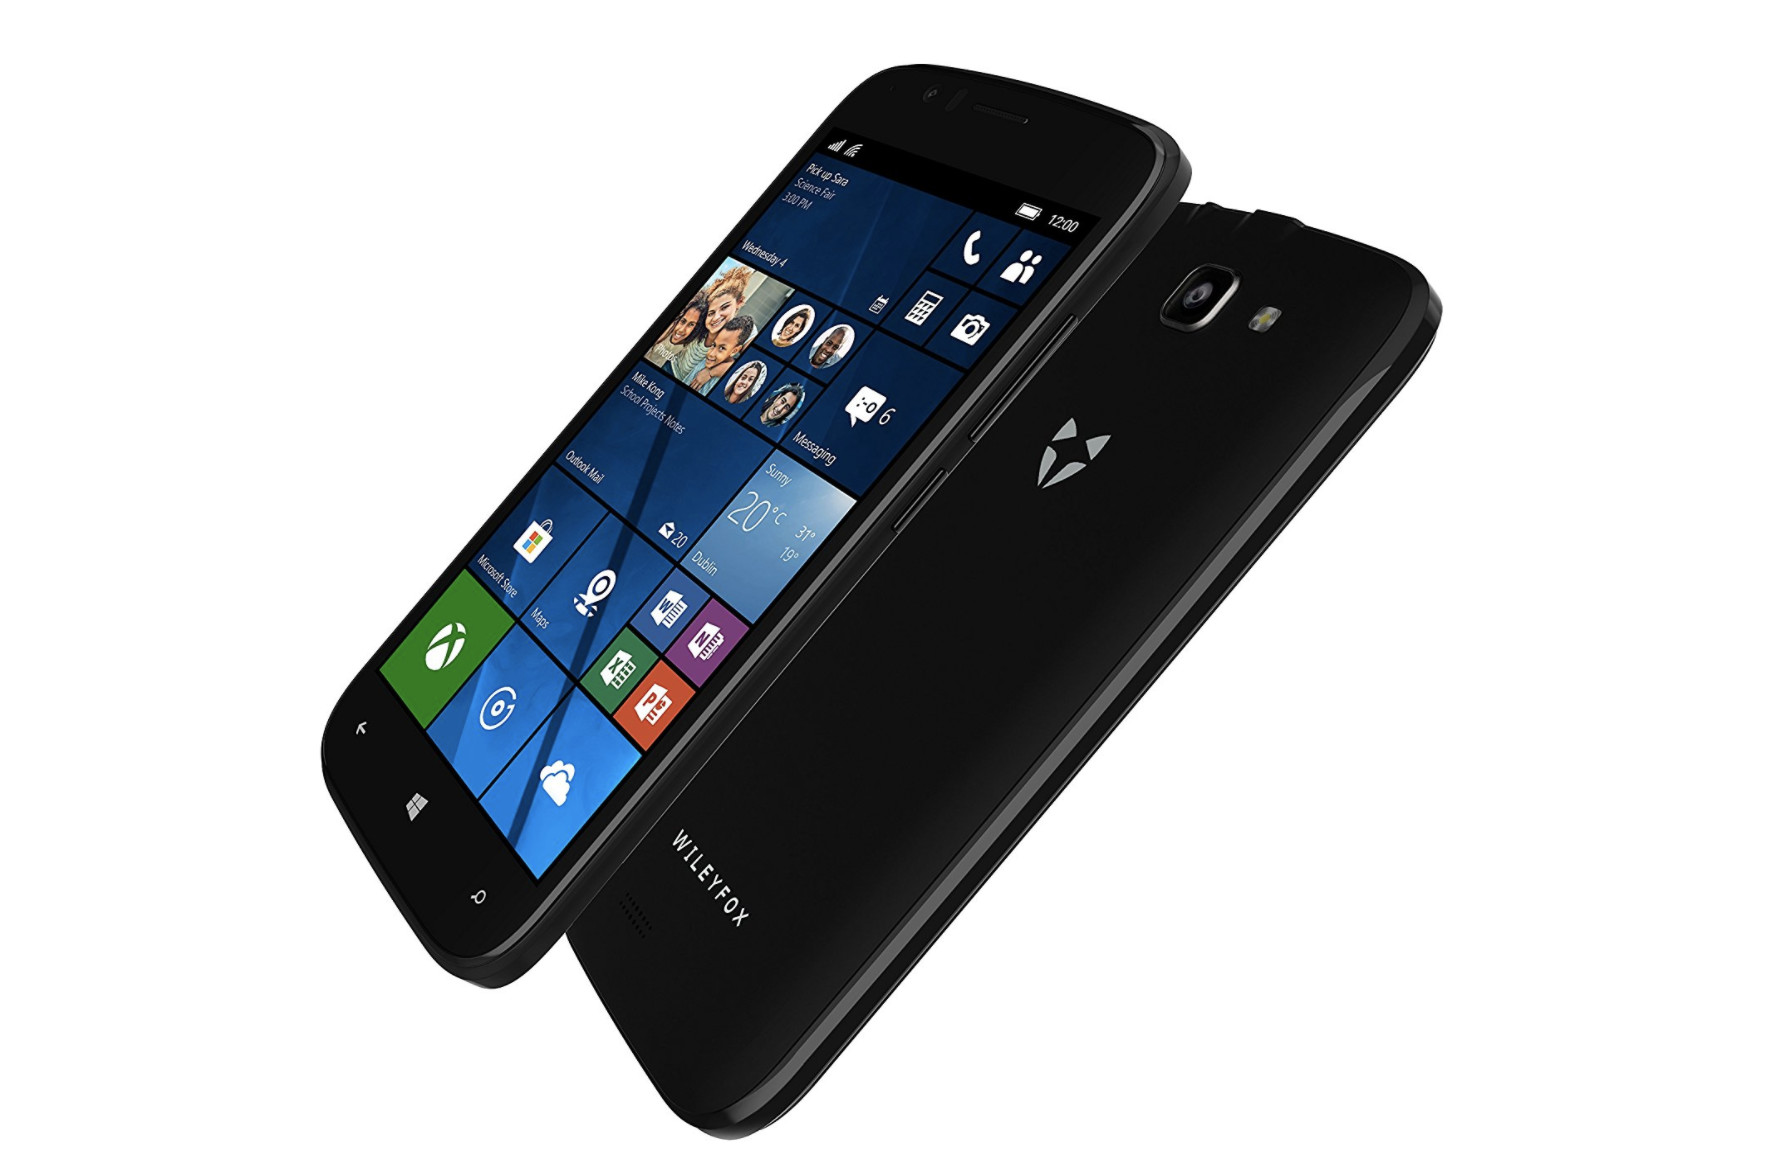 New Wileyfox Pro phone with Windows 10 Mobile arriving on December 4th!